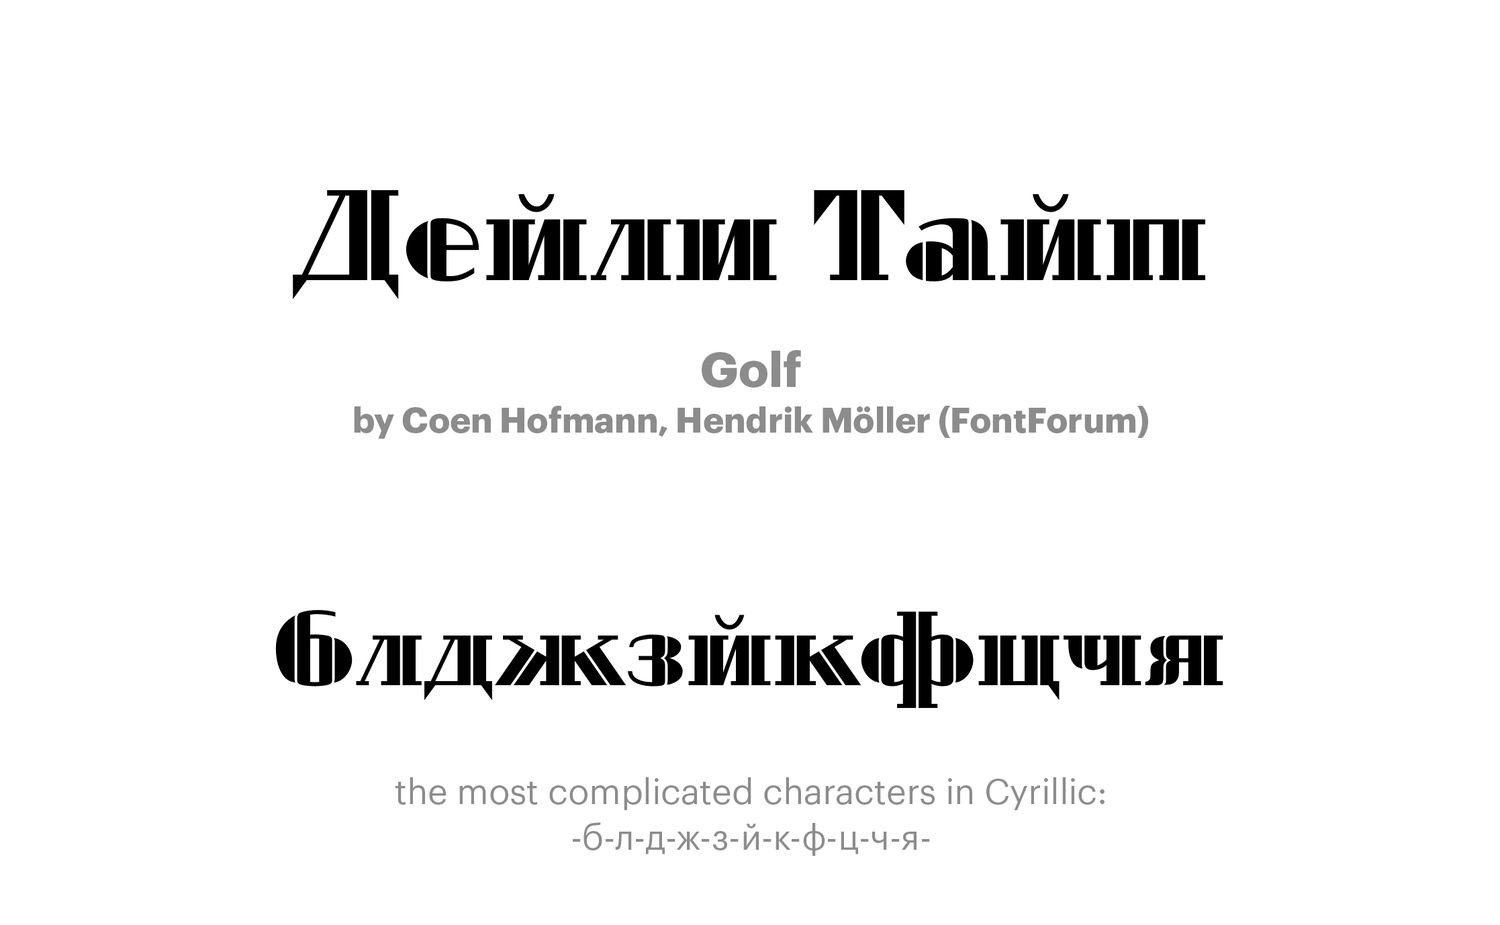 Golf-by-Coen-Hofmann,-Hendrik-Möller-(FontForum)